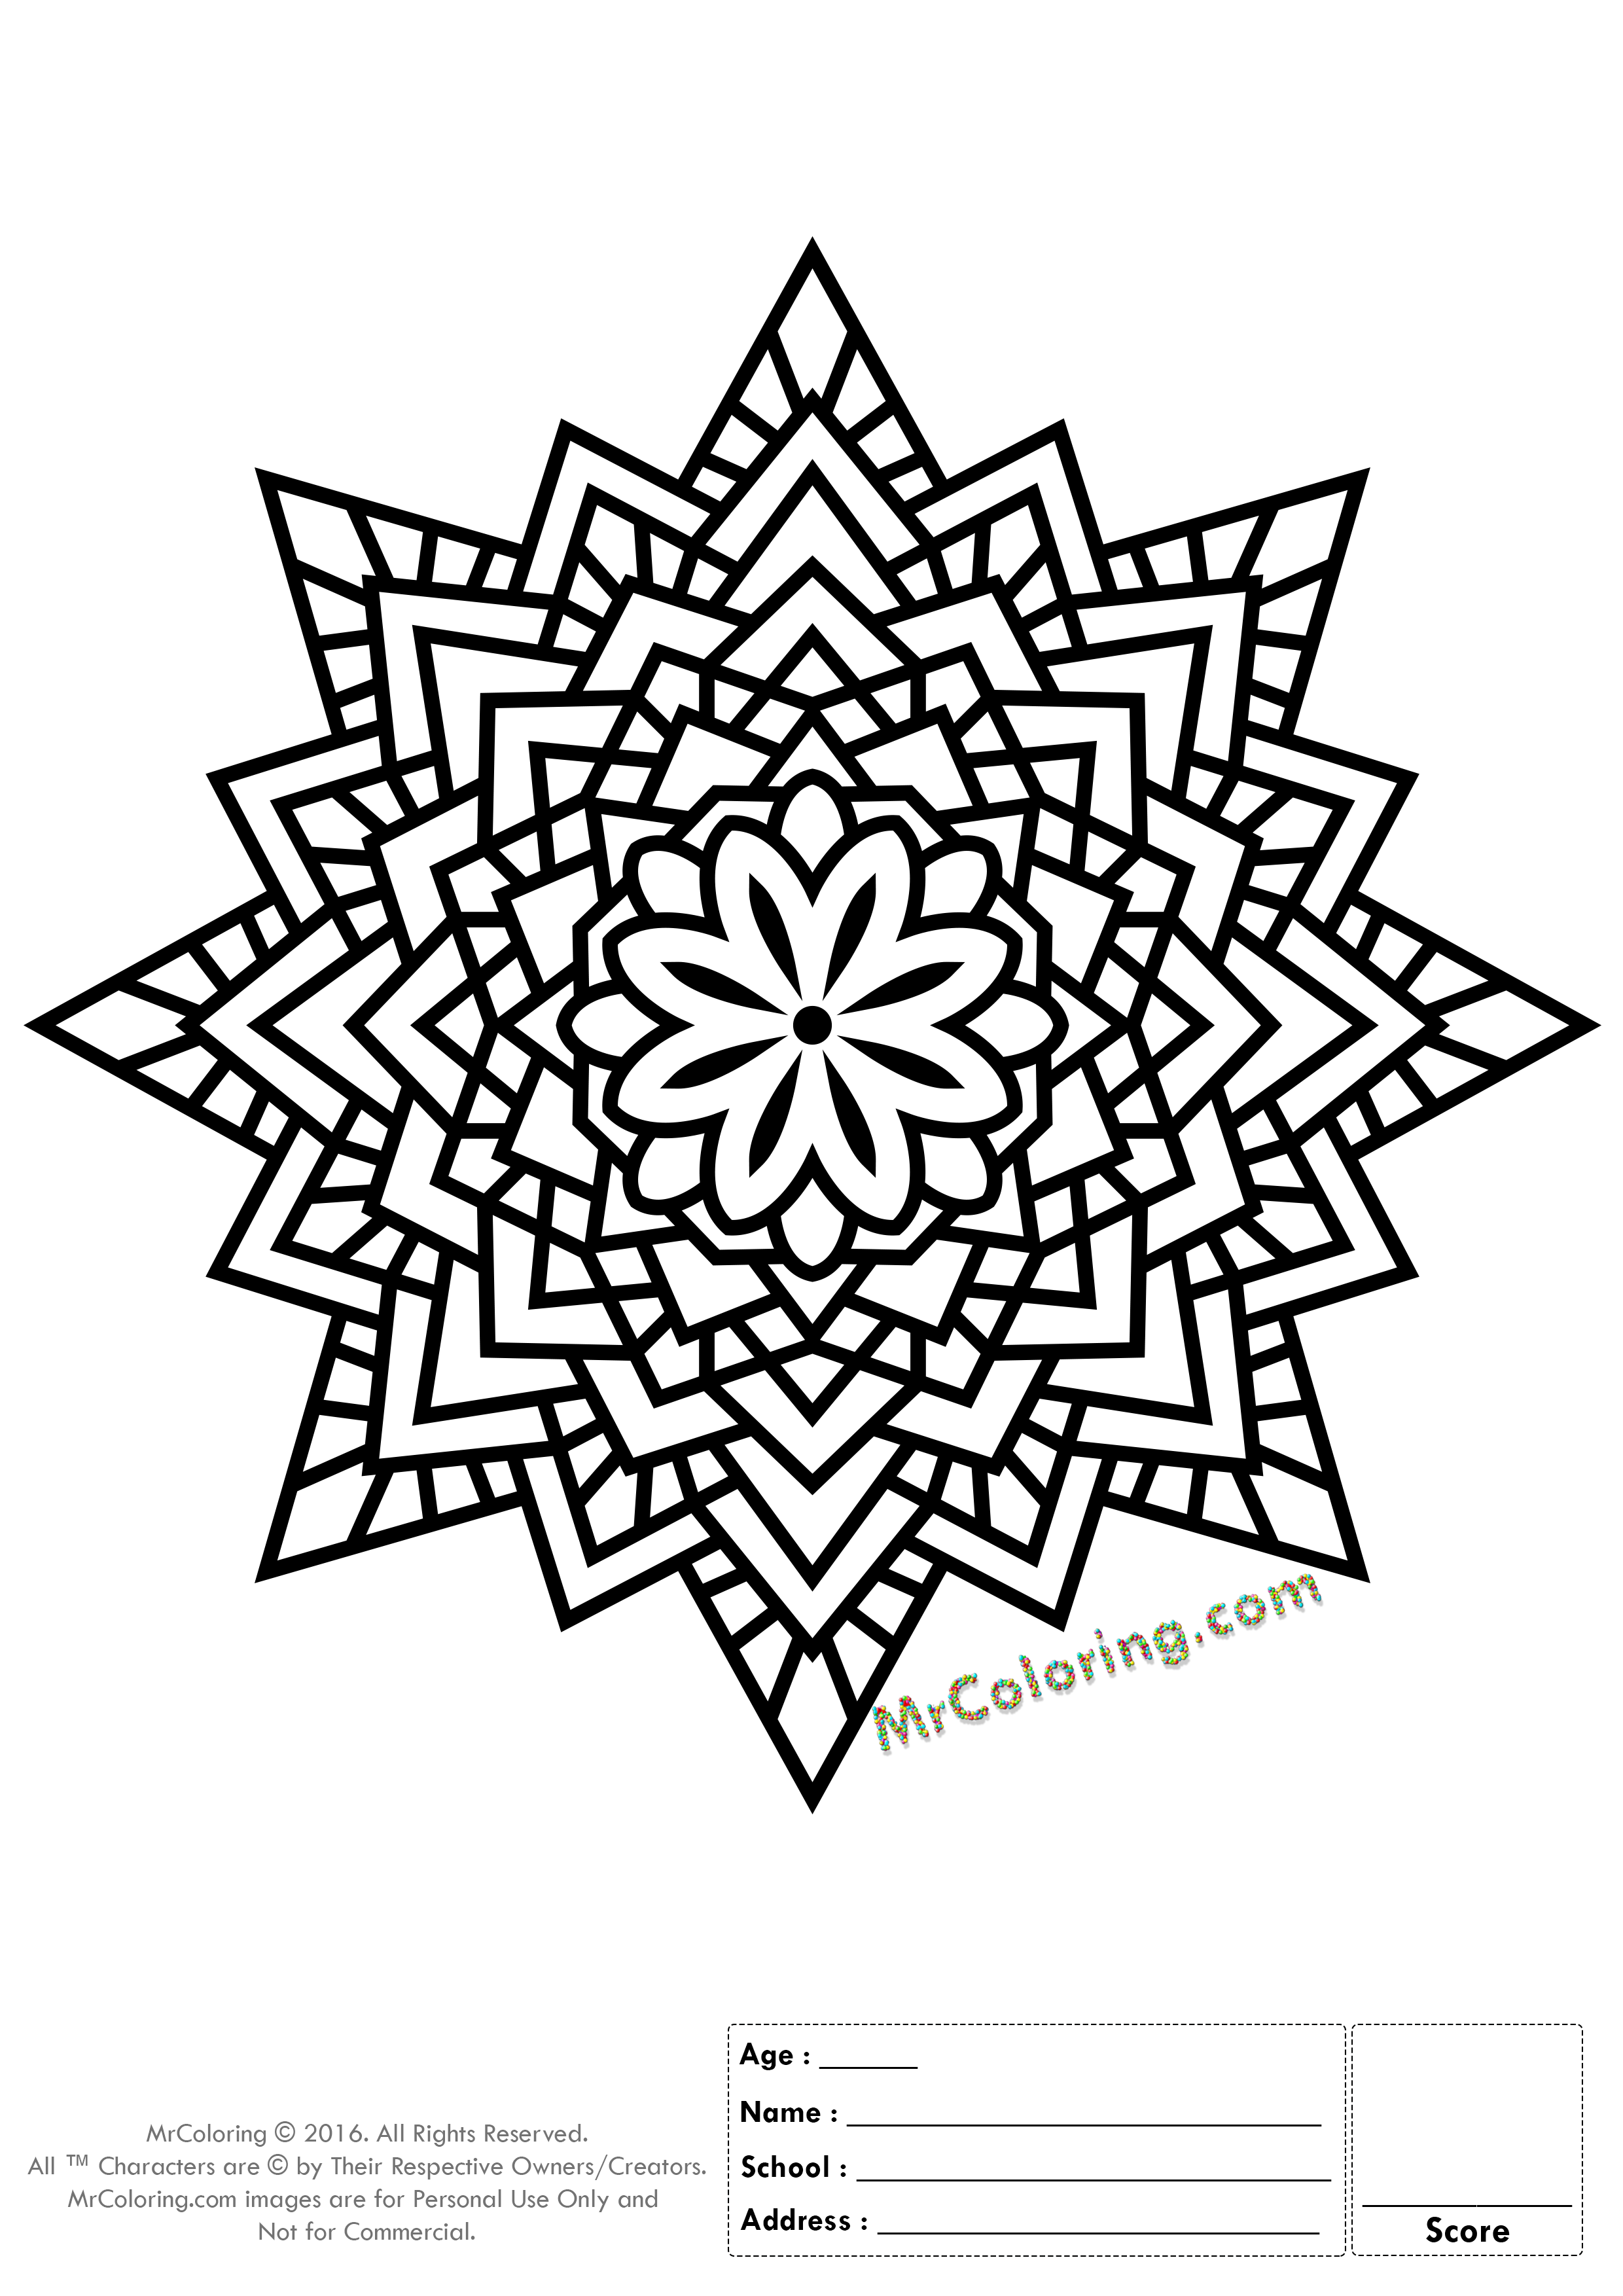 Printable Mandala Online Coloring Pages And Coloring